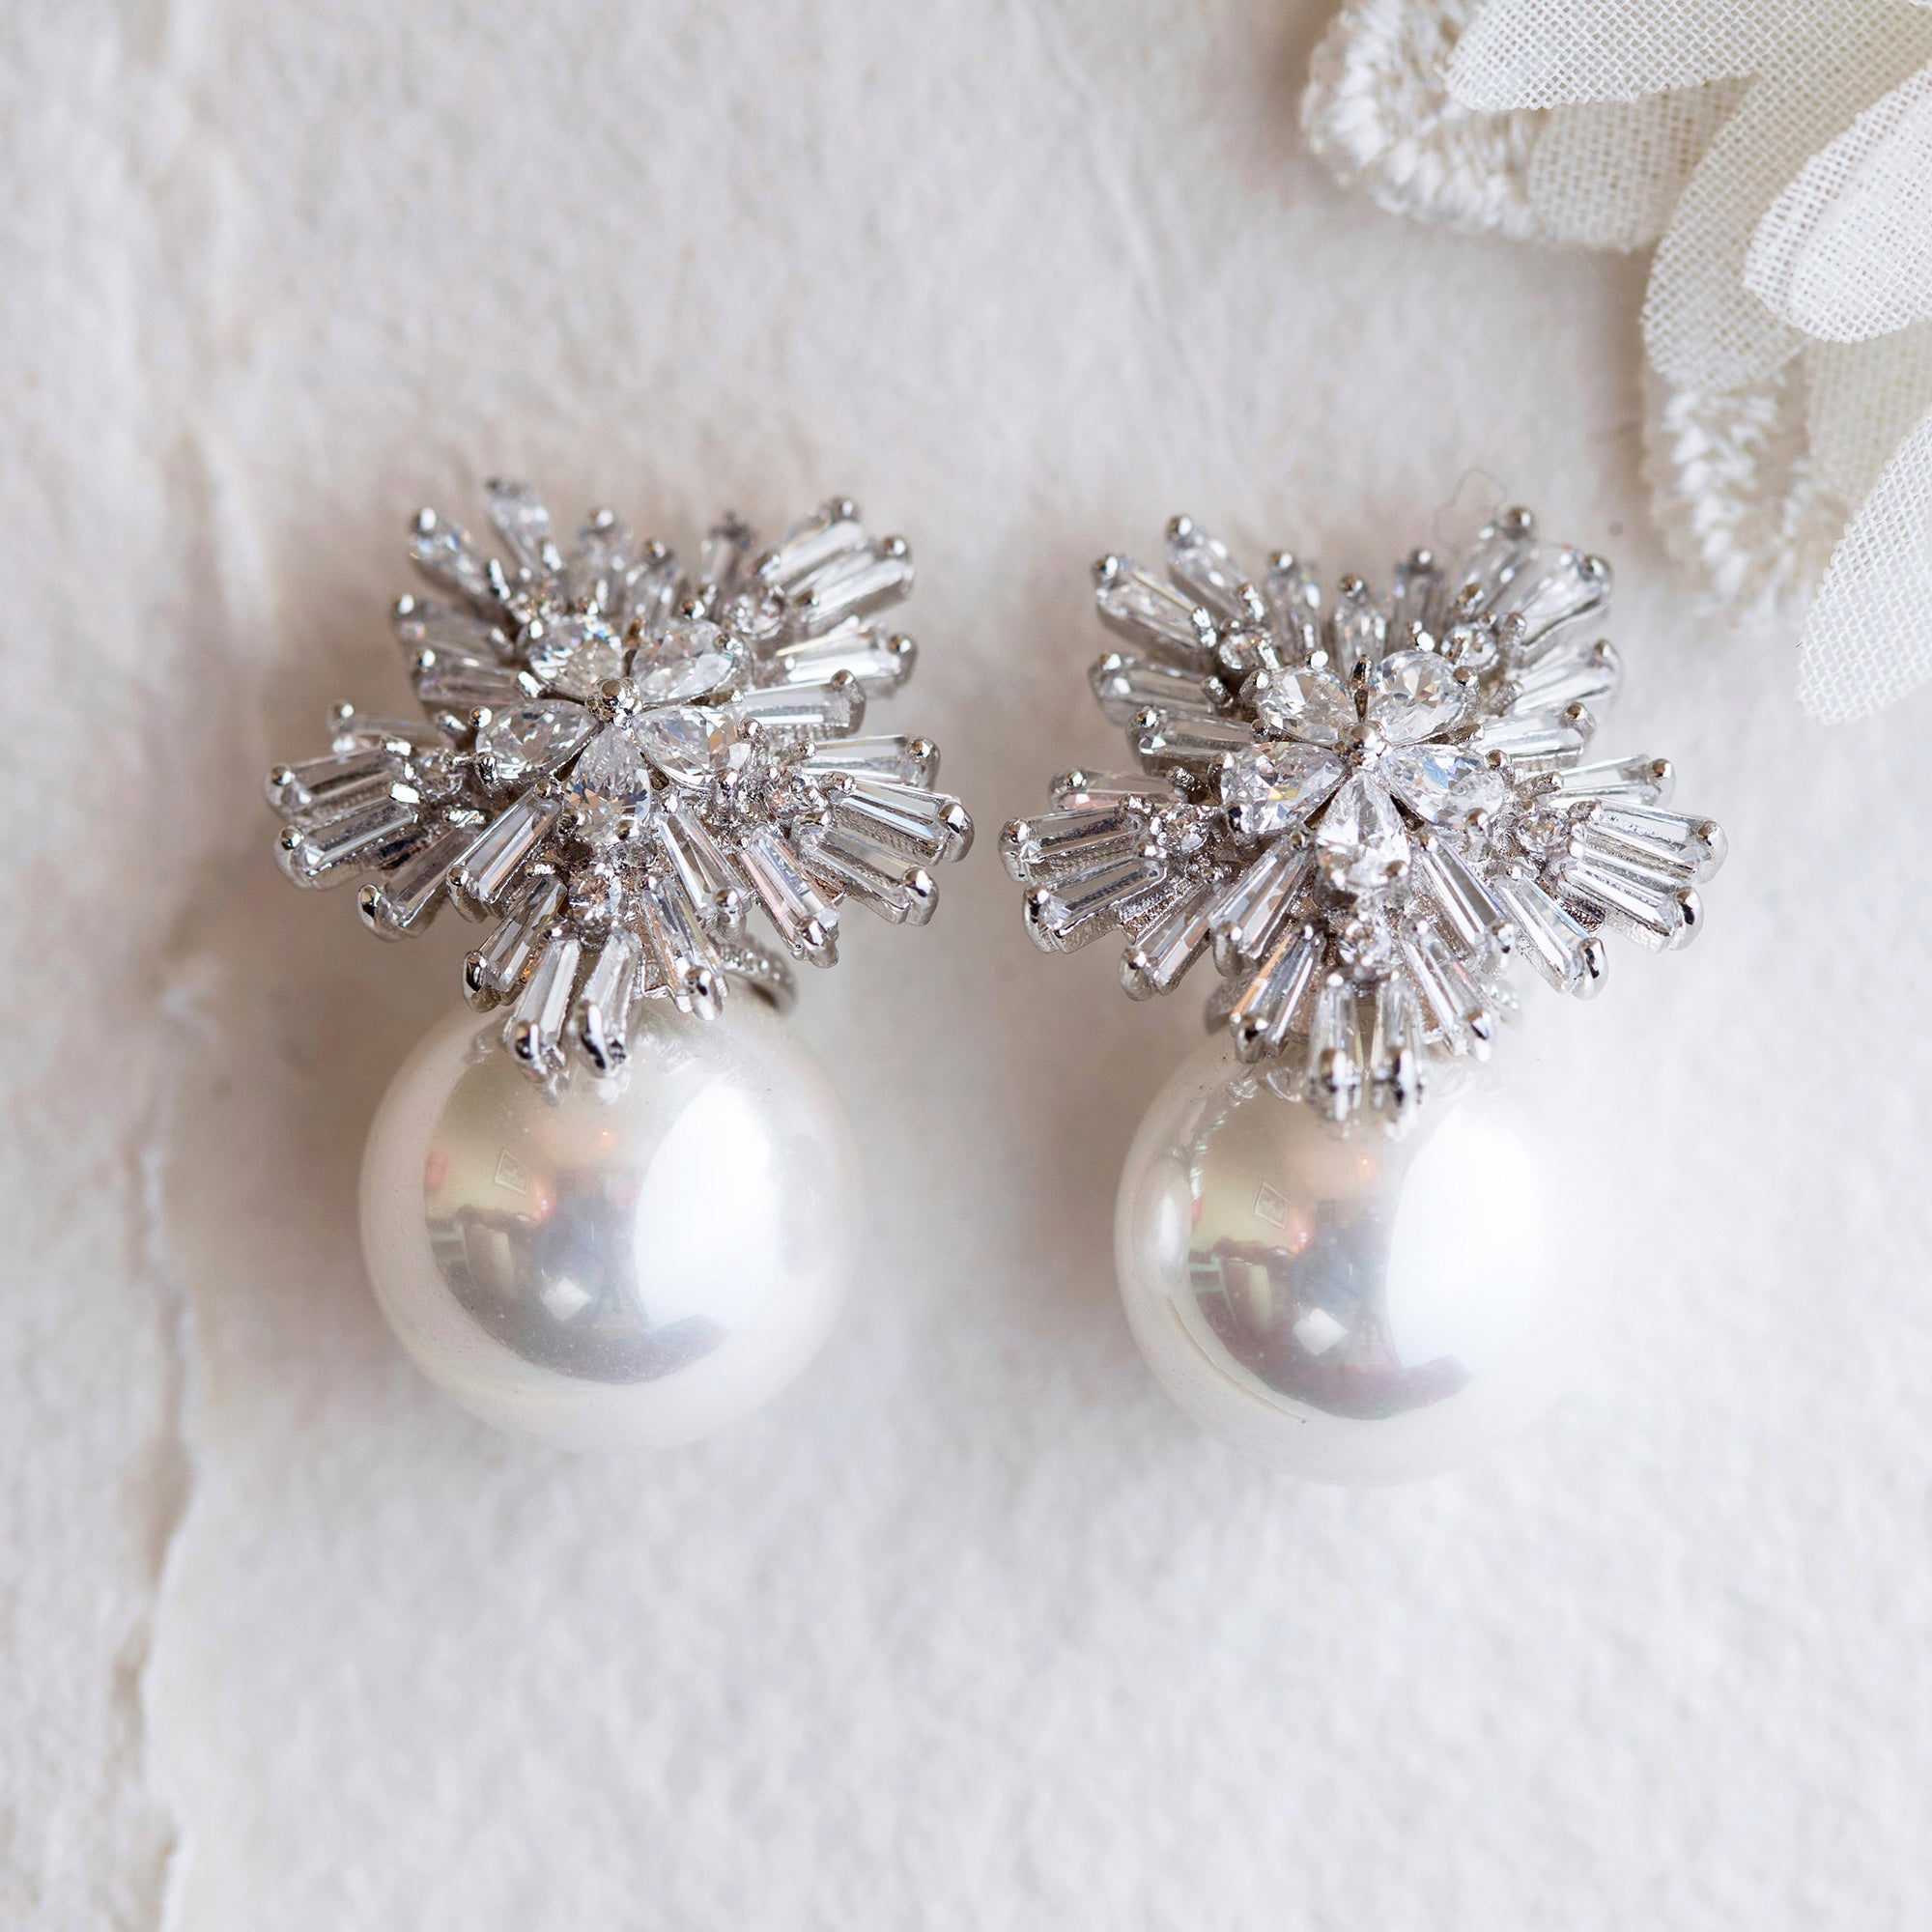 Sooki crystal and pearl earrings